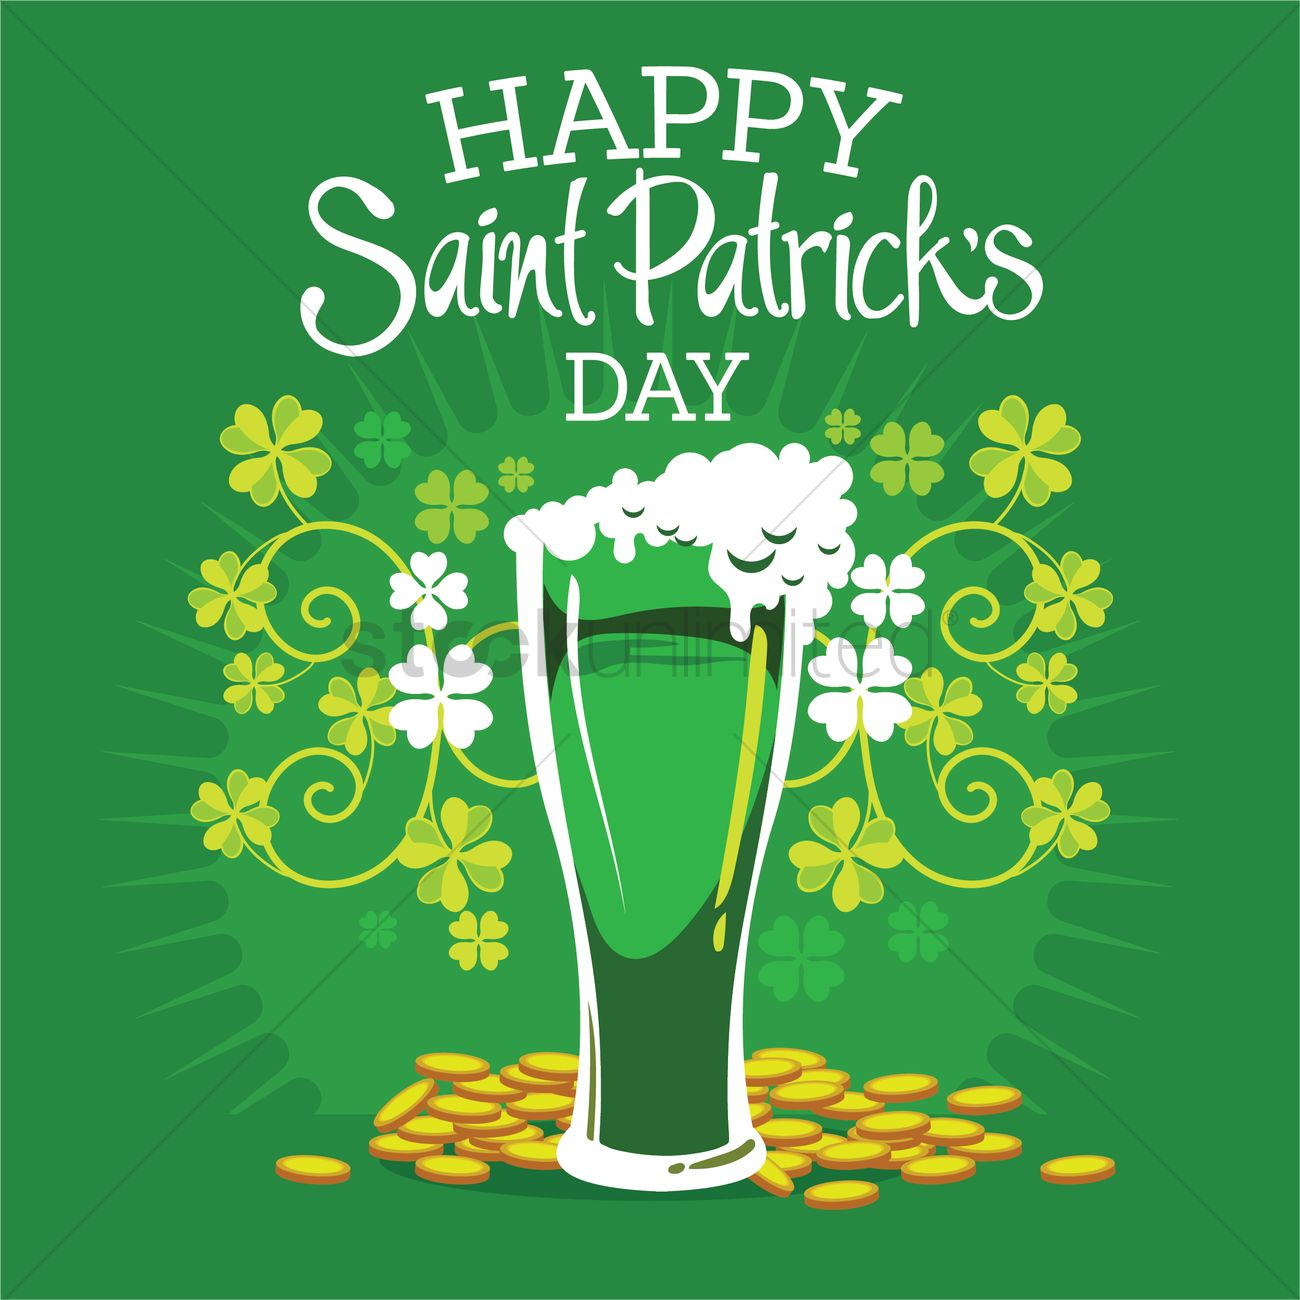 Best St. Patrick's Day Images